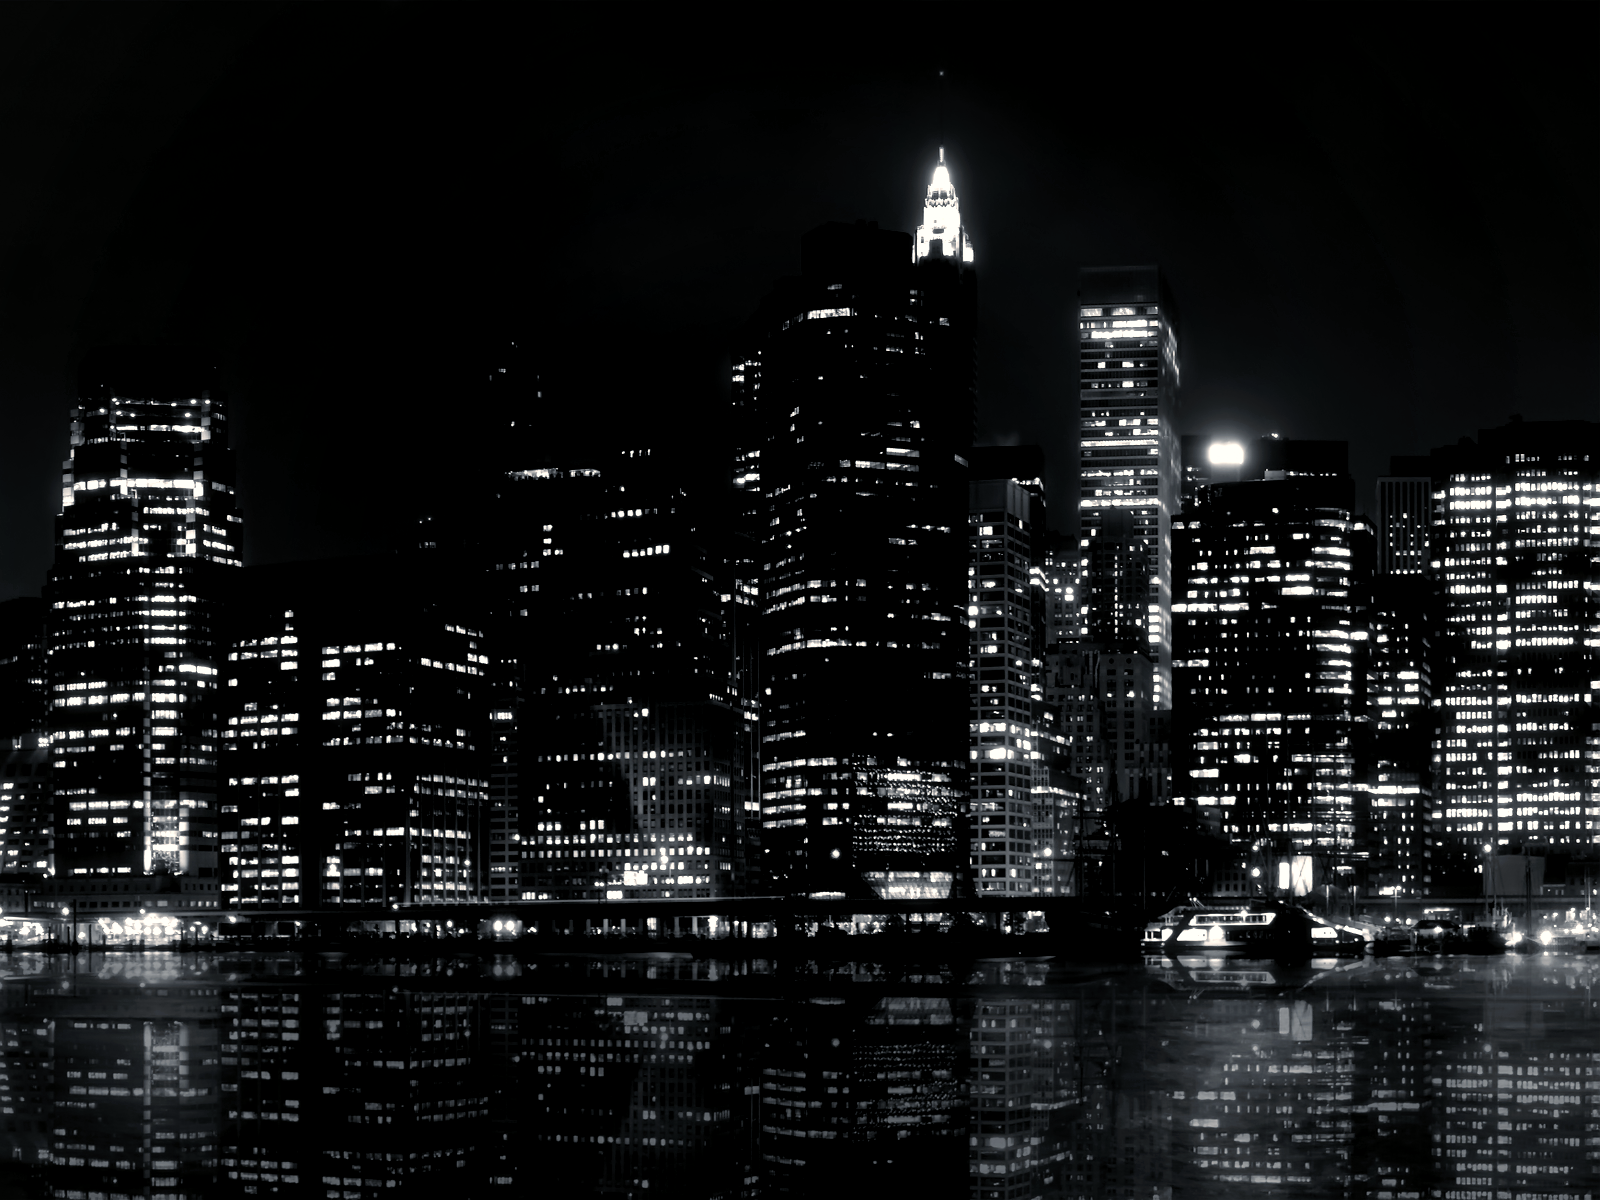 HD Black and White Wallpapers   High Quality Defiantion Black White 1600x1200